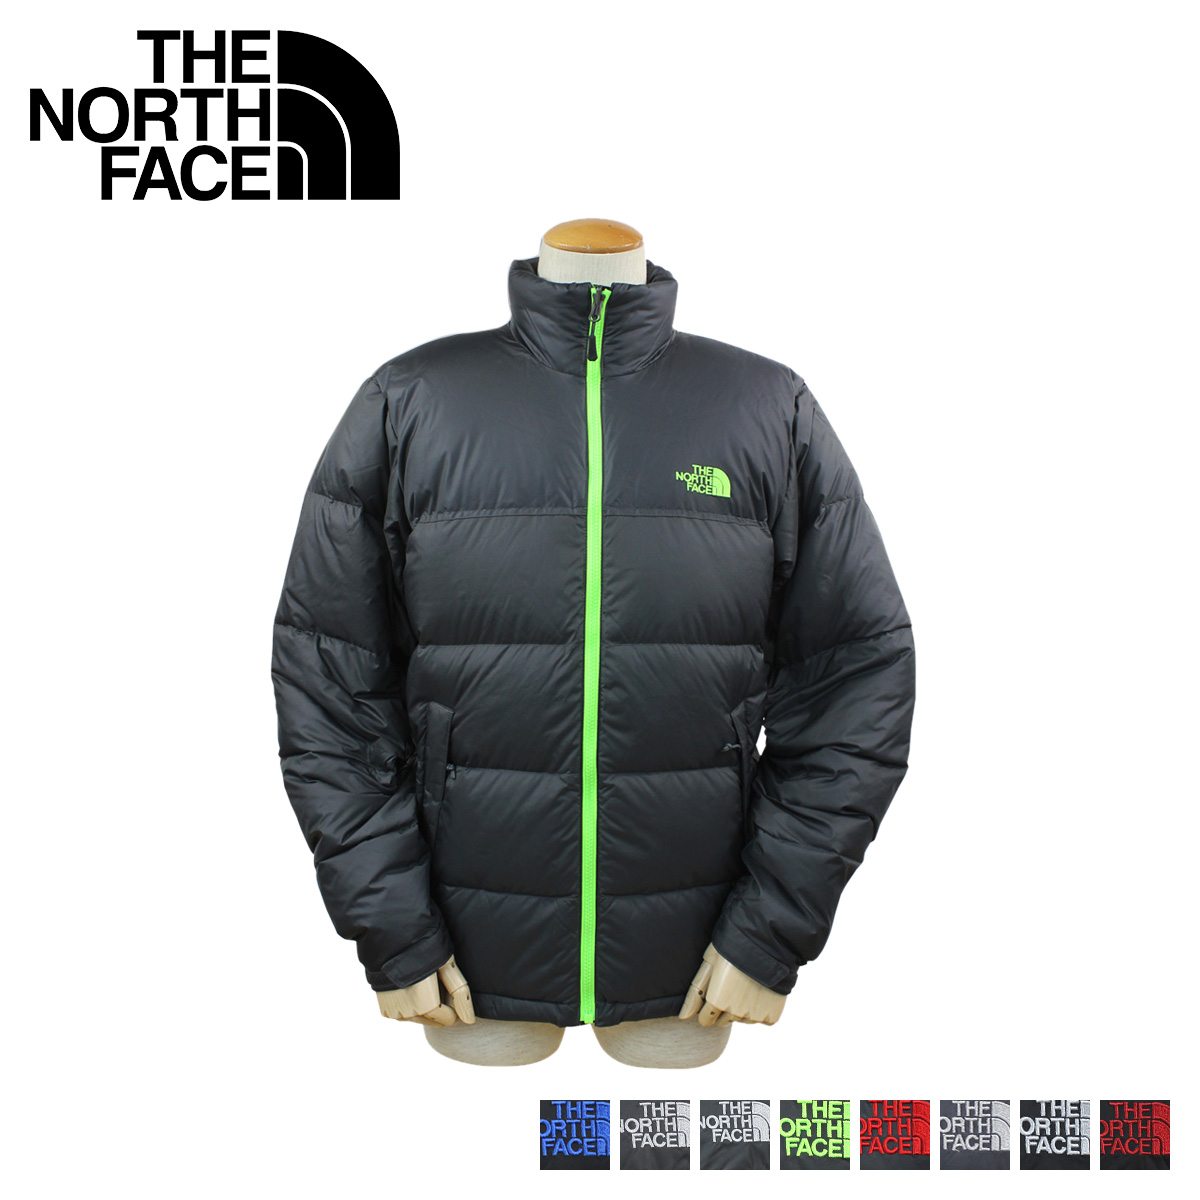 a2d97a12b0 ... czech point 2 times the north face the north face down jackets mens  outerwear 2014 new